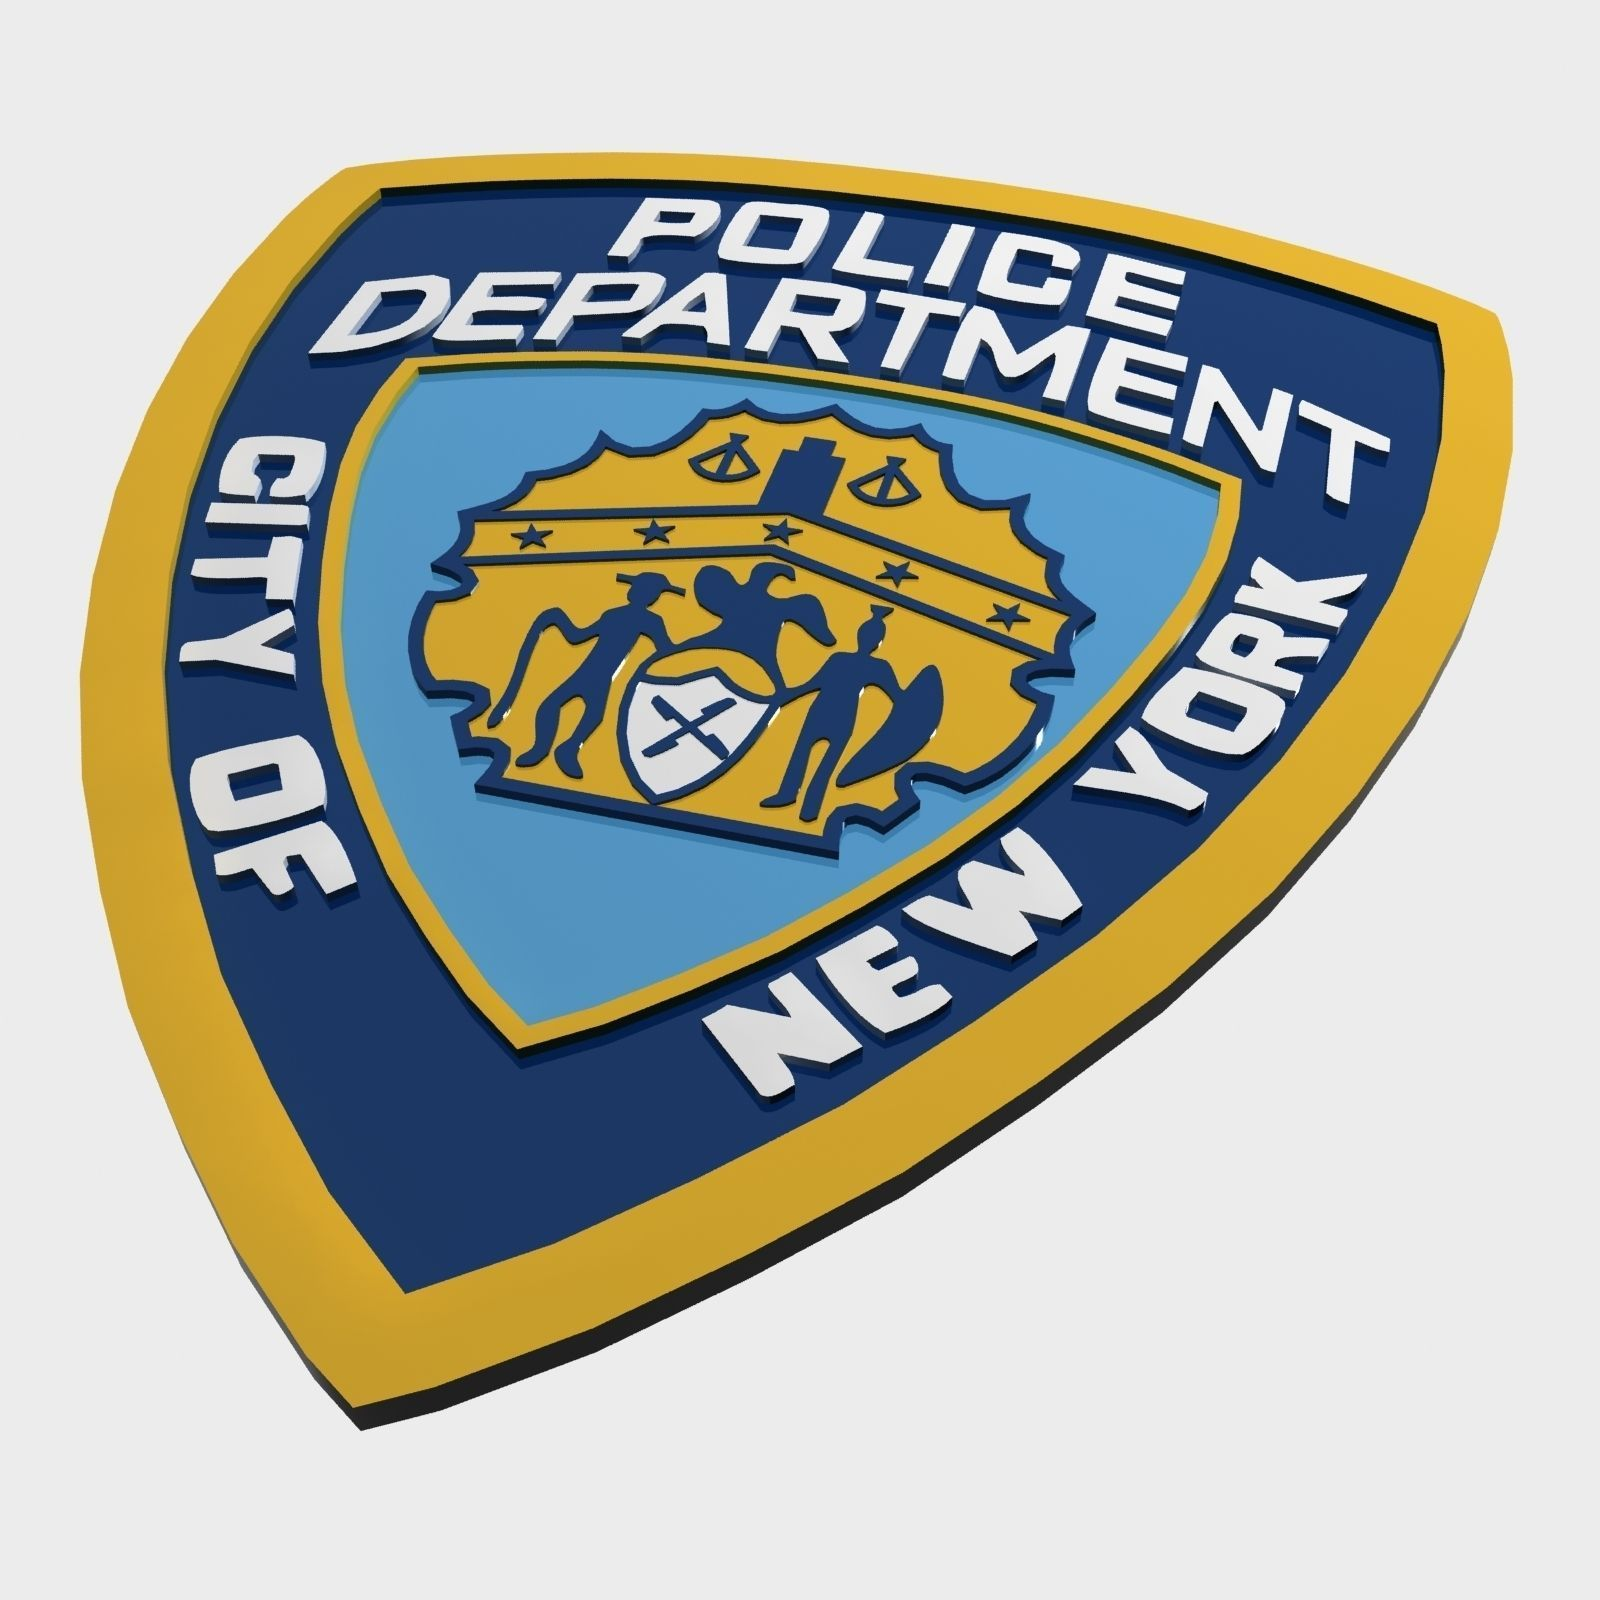 nypd police department logo 3d asset cgtrader rh cgtrader com nypd logo charm nypd logo charm